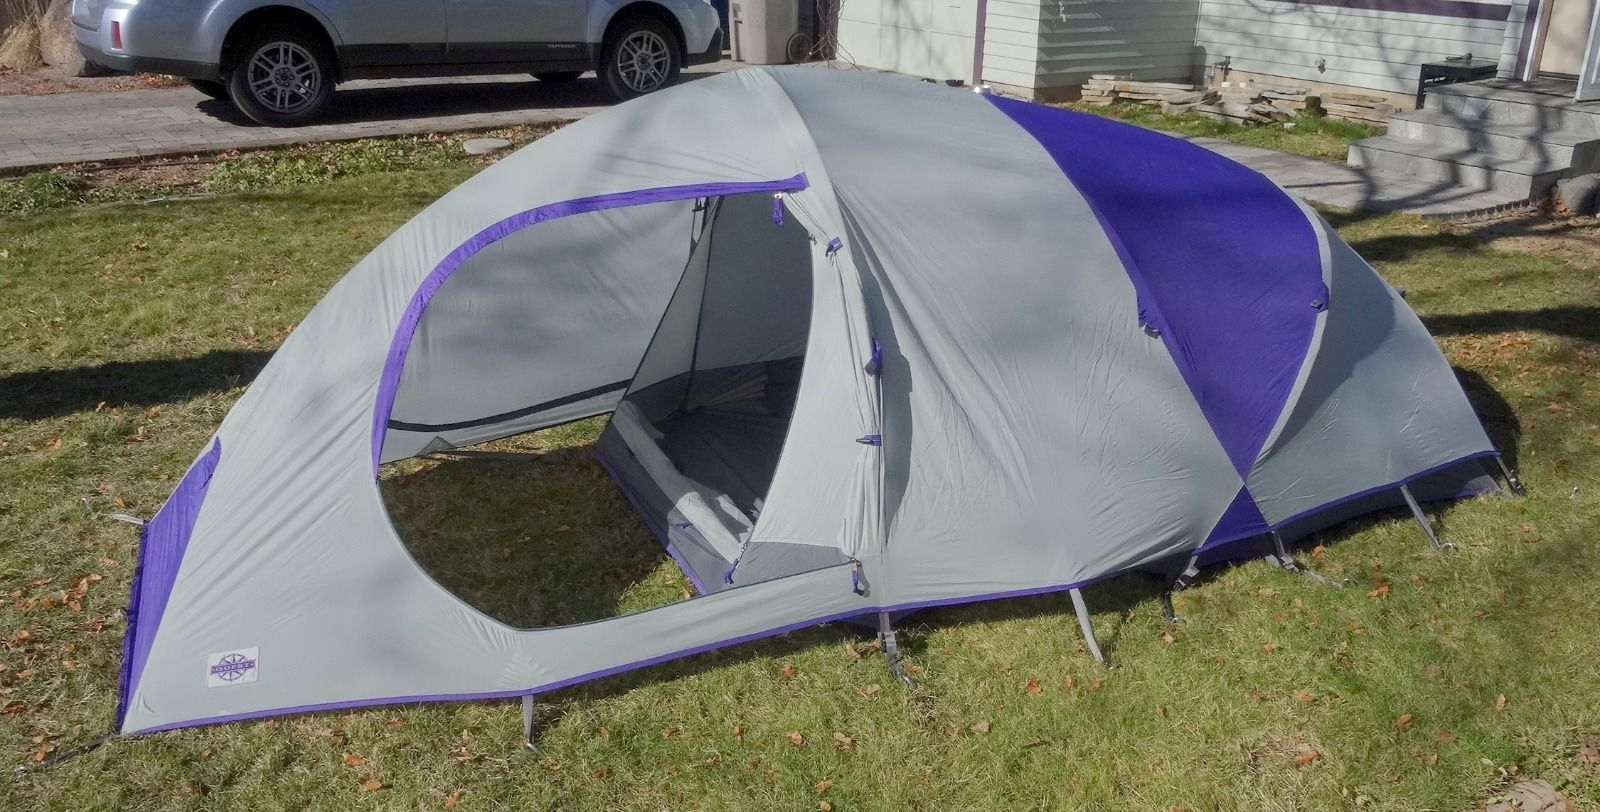 Quest Praying Mantis 2 Person 4 Season Tent & Quest Praying Mantis 2 Person 4 Season Tent | Camping Gear ...